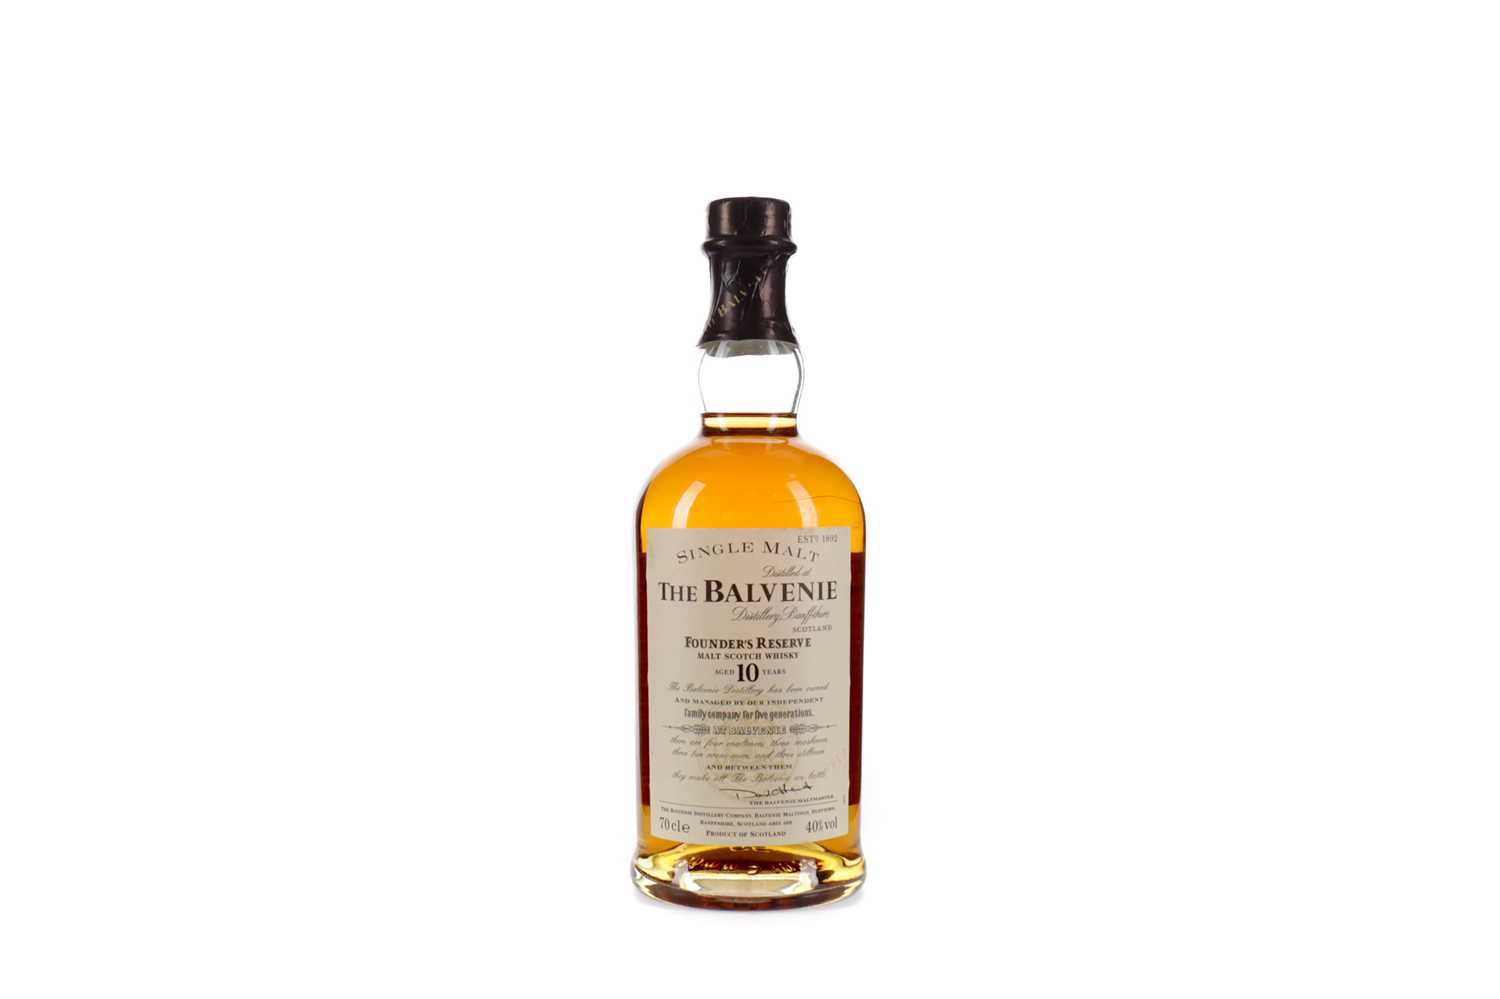 Lot 22 - BALVENIE FOUNDER'S RESERVE AGED 10 YEARS